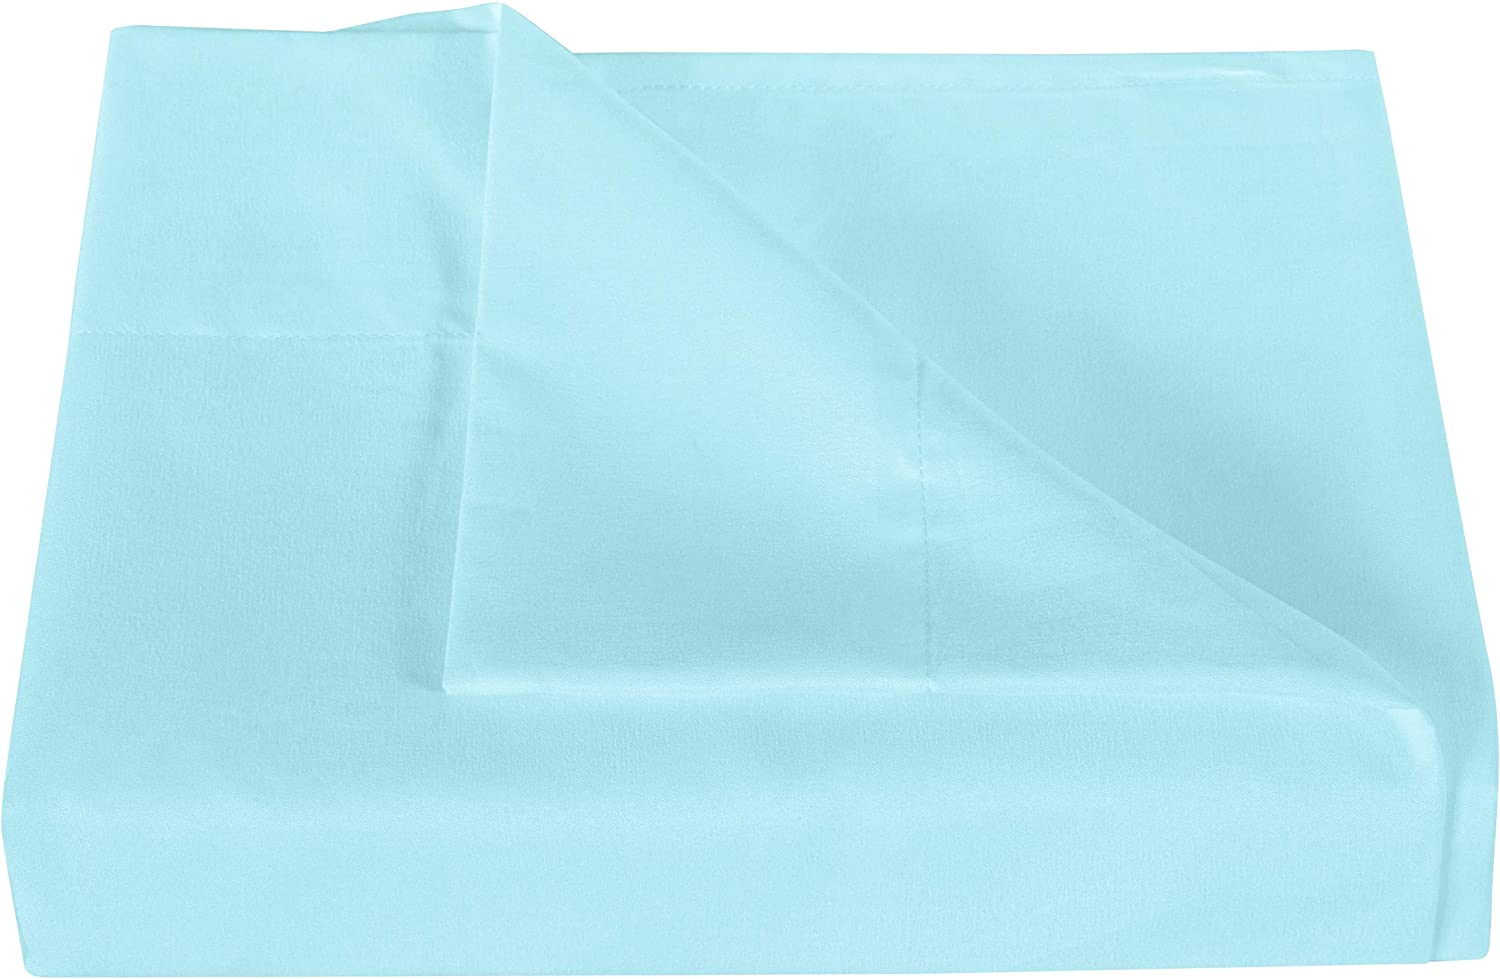 Golden Era 550 Las Vegas Mall Thead Count Supima Top Sheet We OFFer at cheap prices 1-Piece Flat Cotton